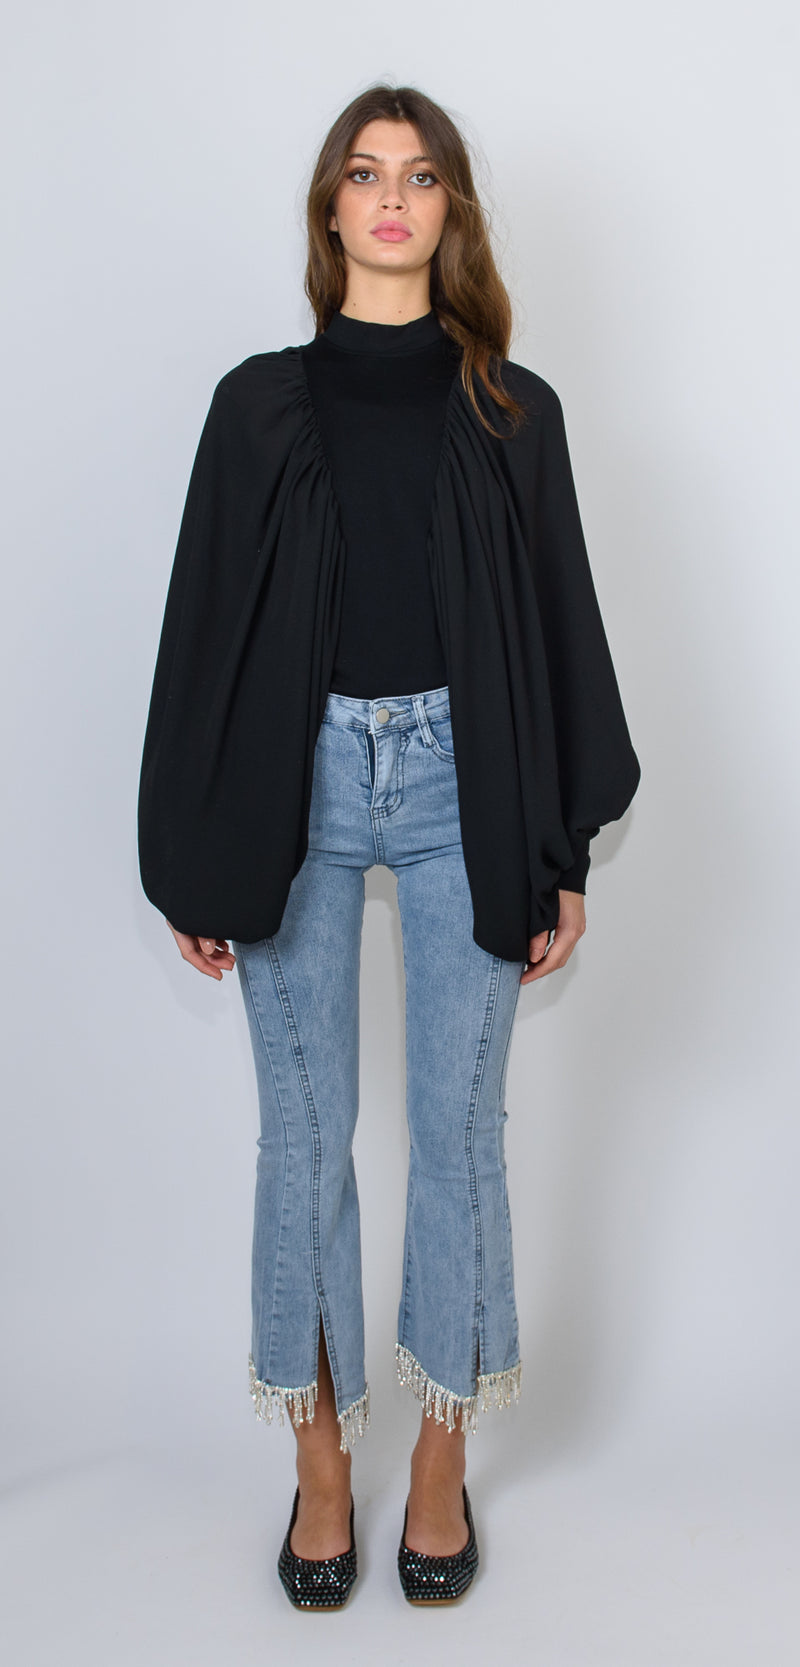 Odì Odì Black shirt with high collar and with oversized sleeves